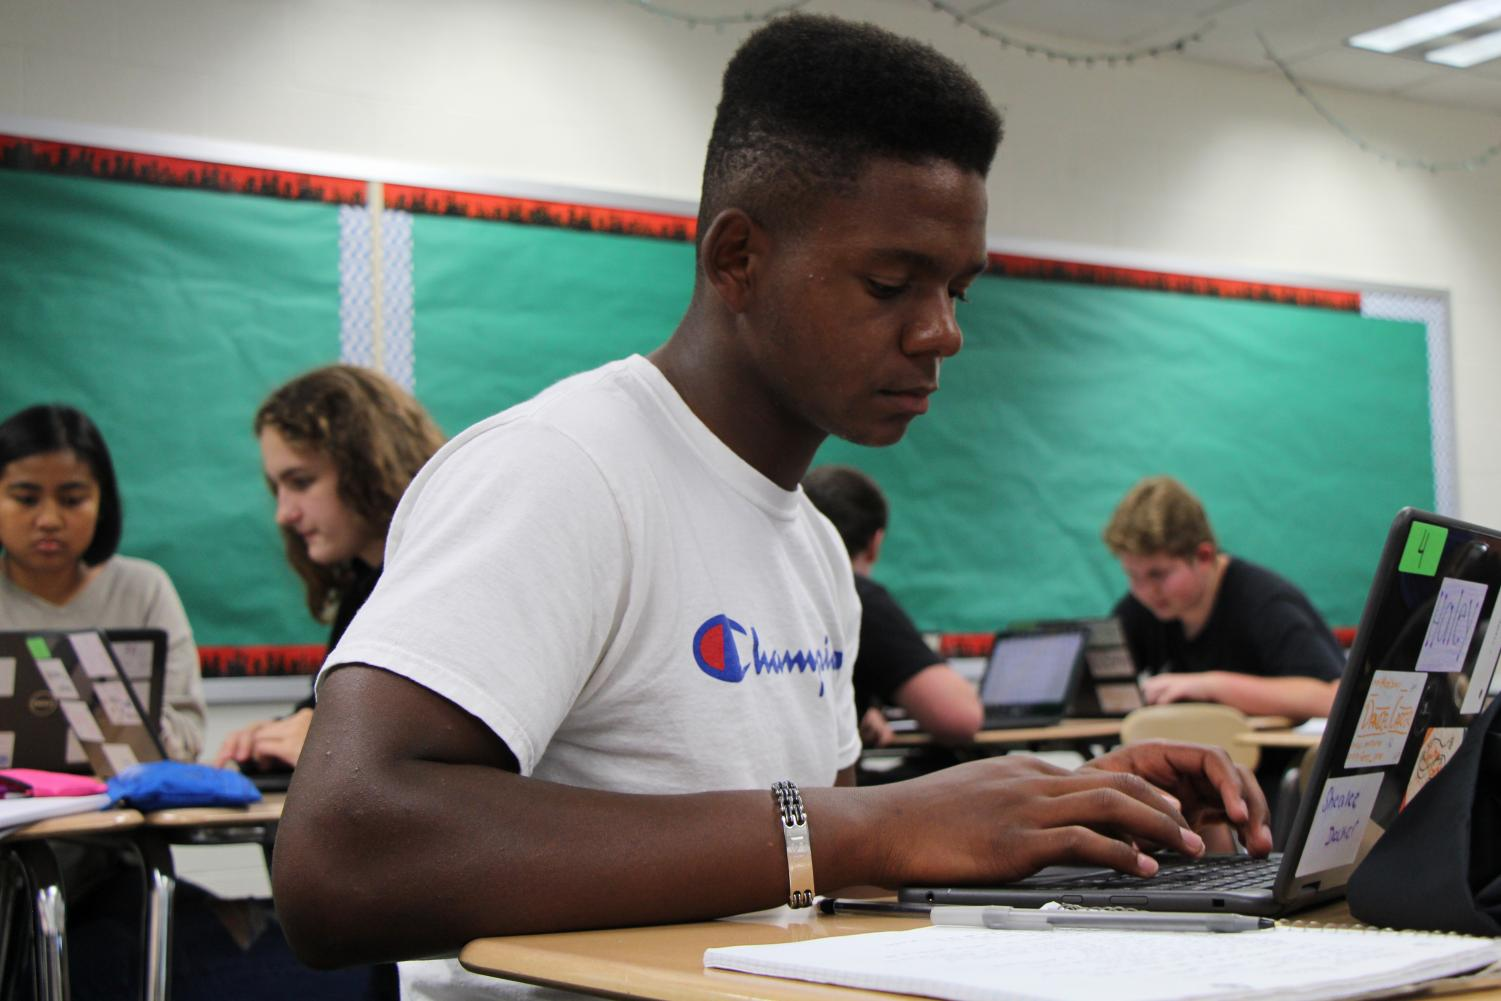 Daniel Carter, senior, works with one of the new laptops to analyze an article for his rhetoric class.